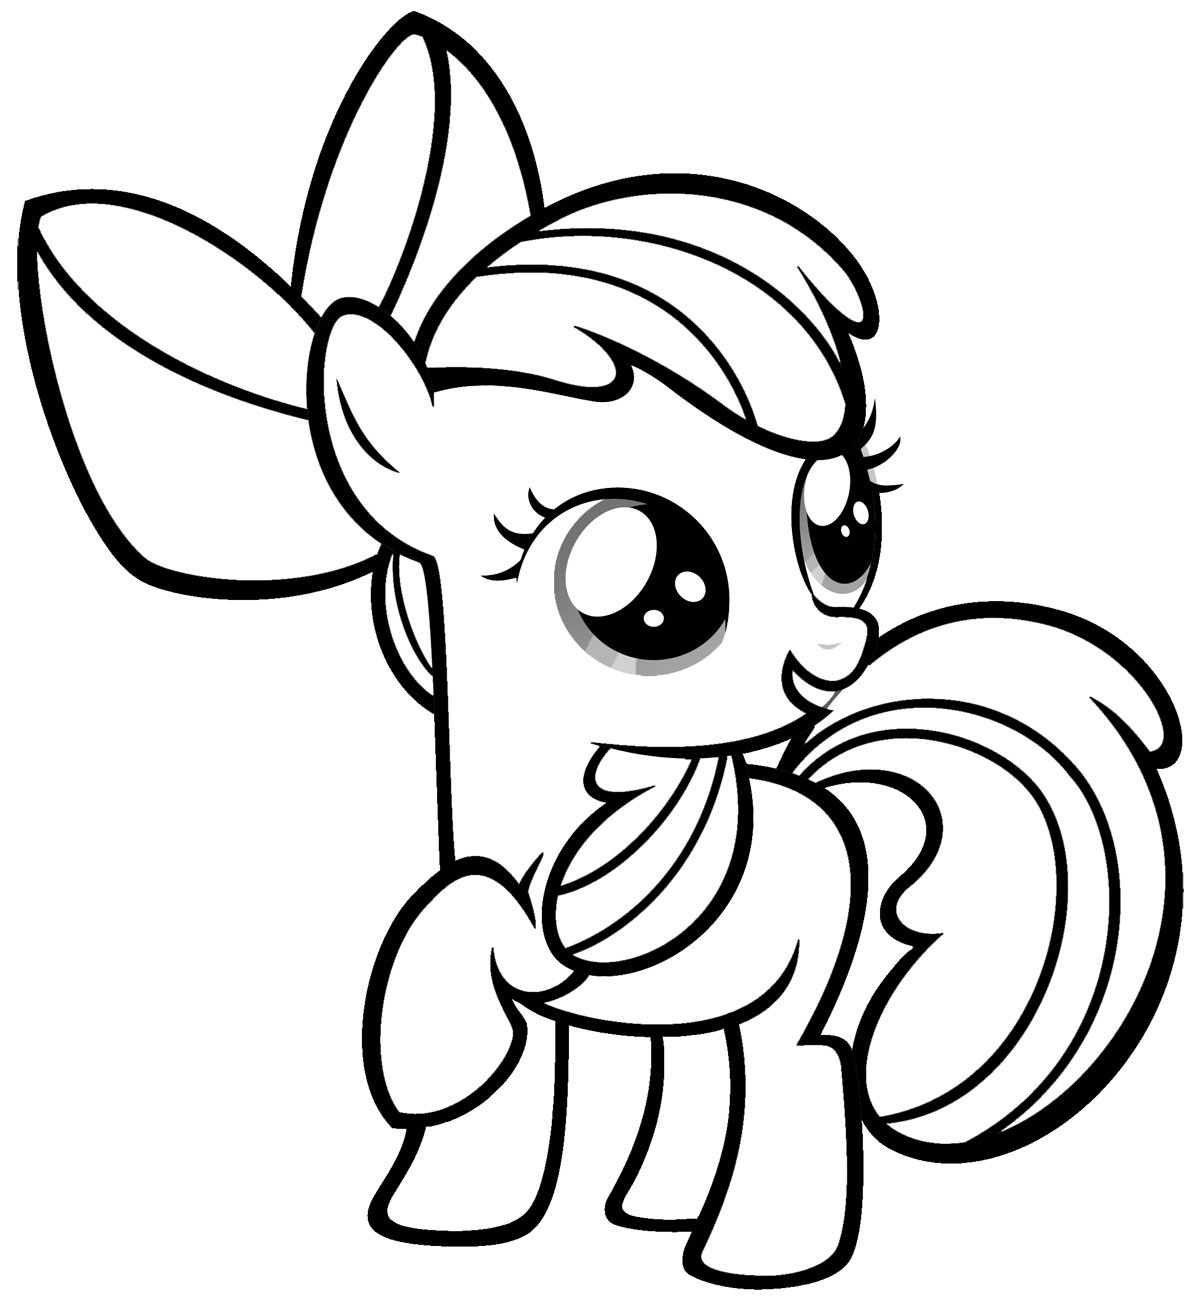 kids pony coloring pages - photo#2